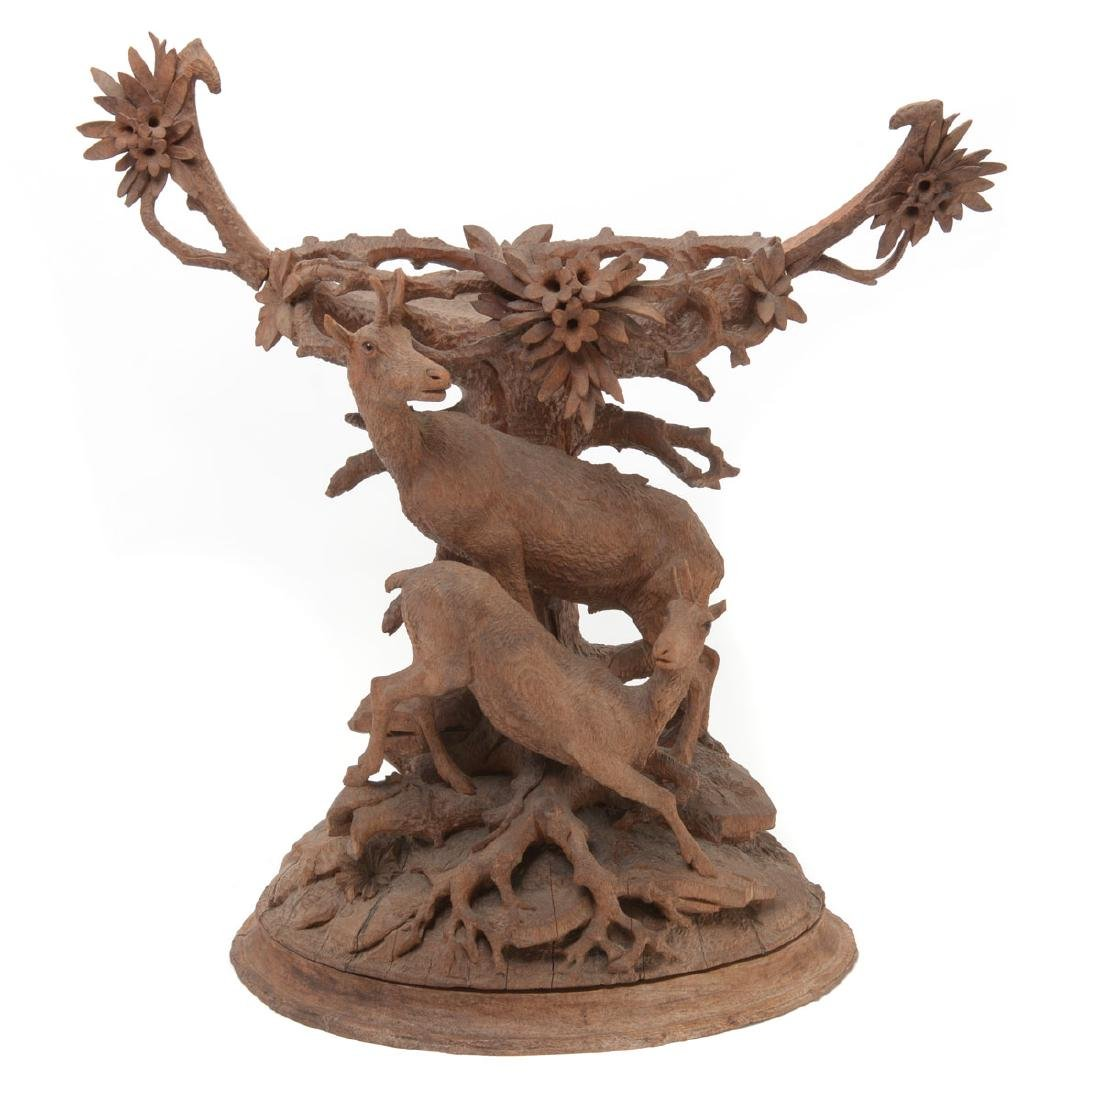 Swiss Carved Wood Centerpiece of Two Mountain Goats,